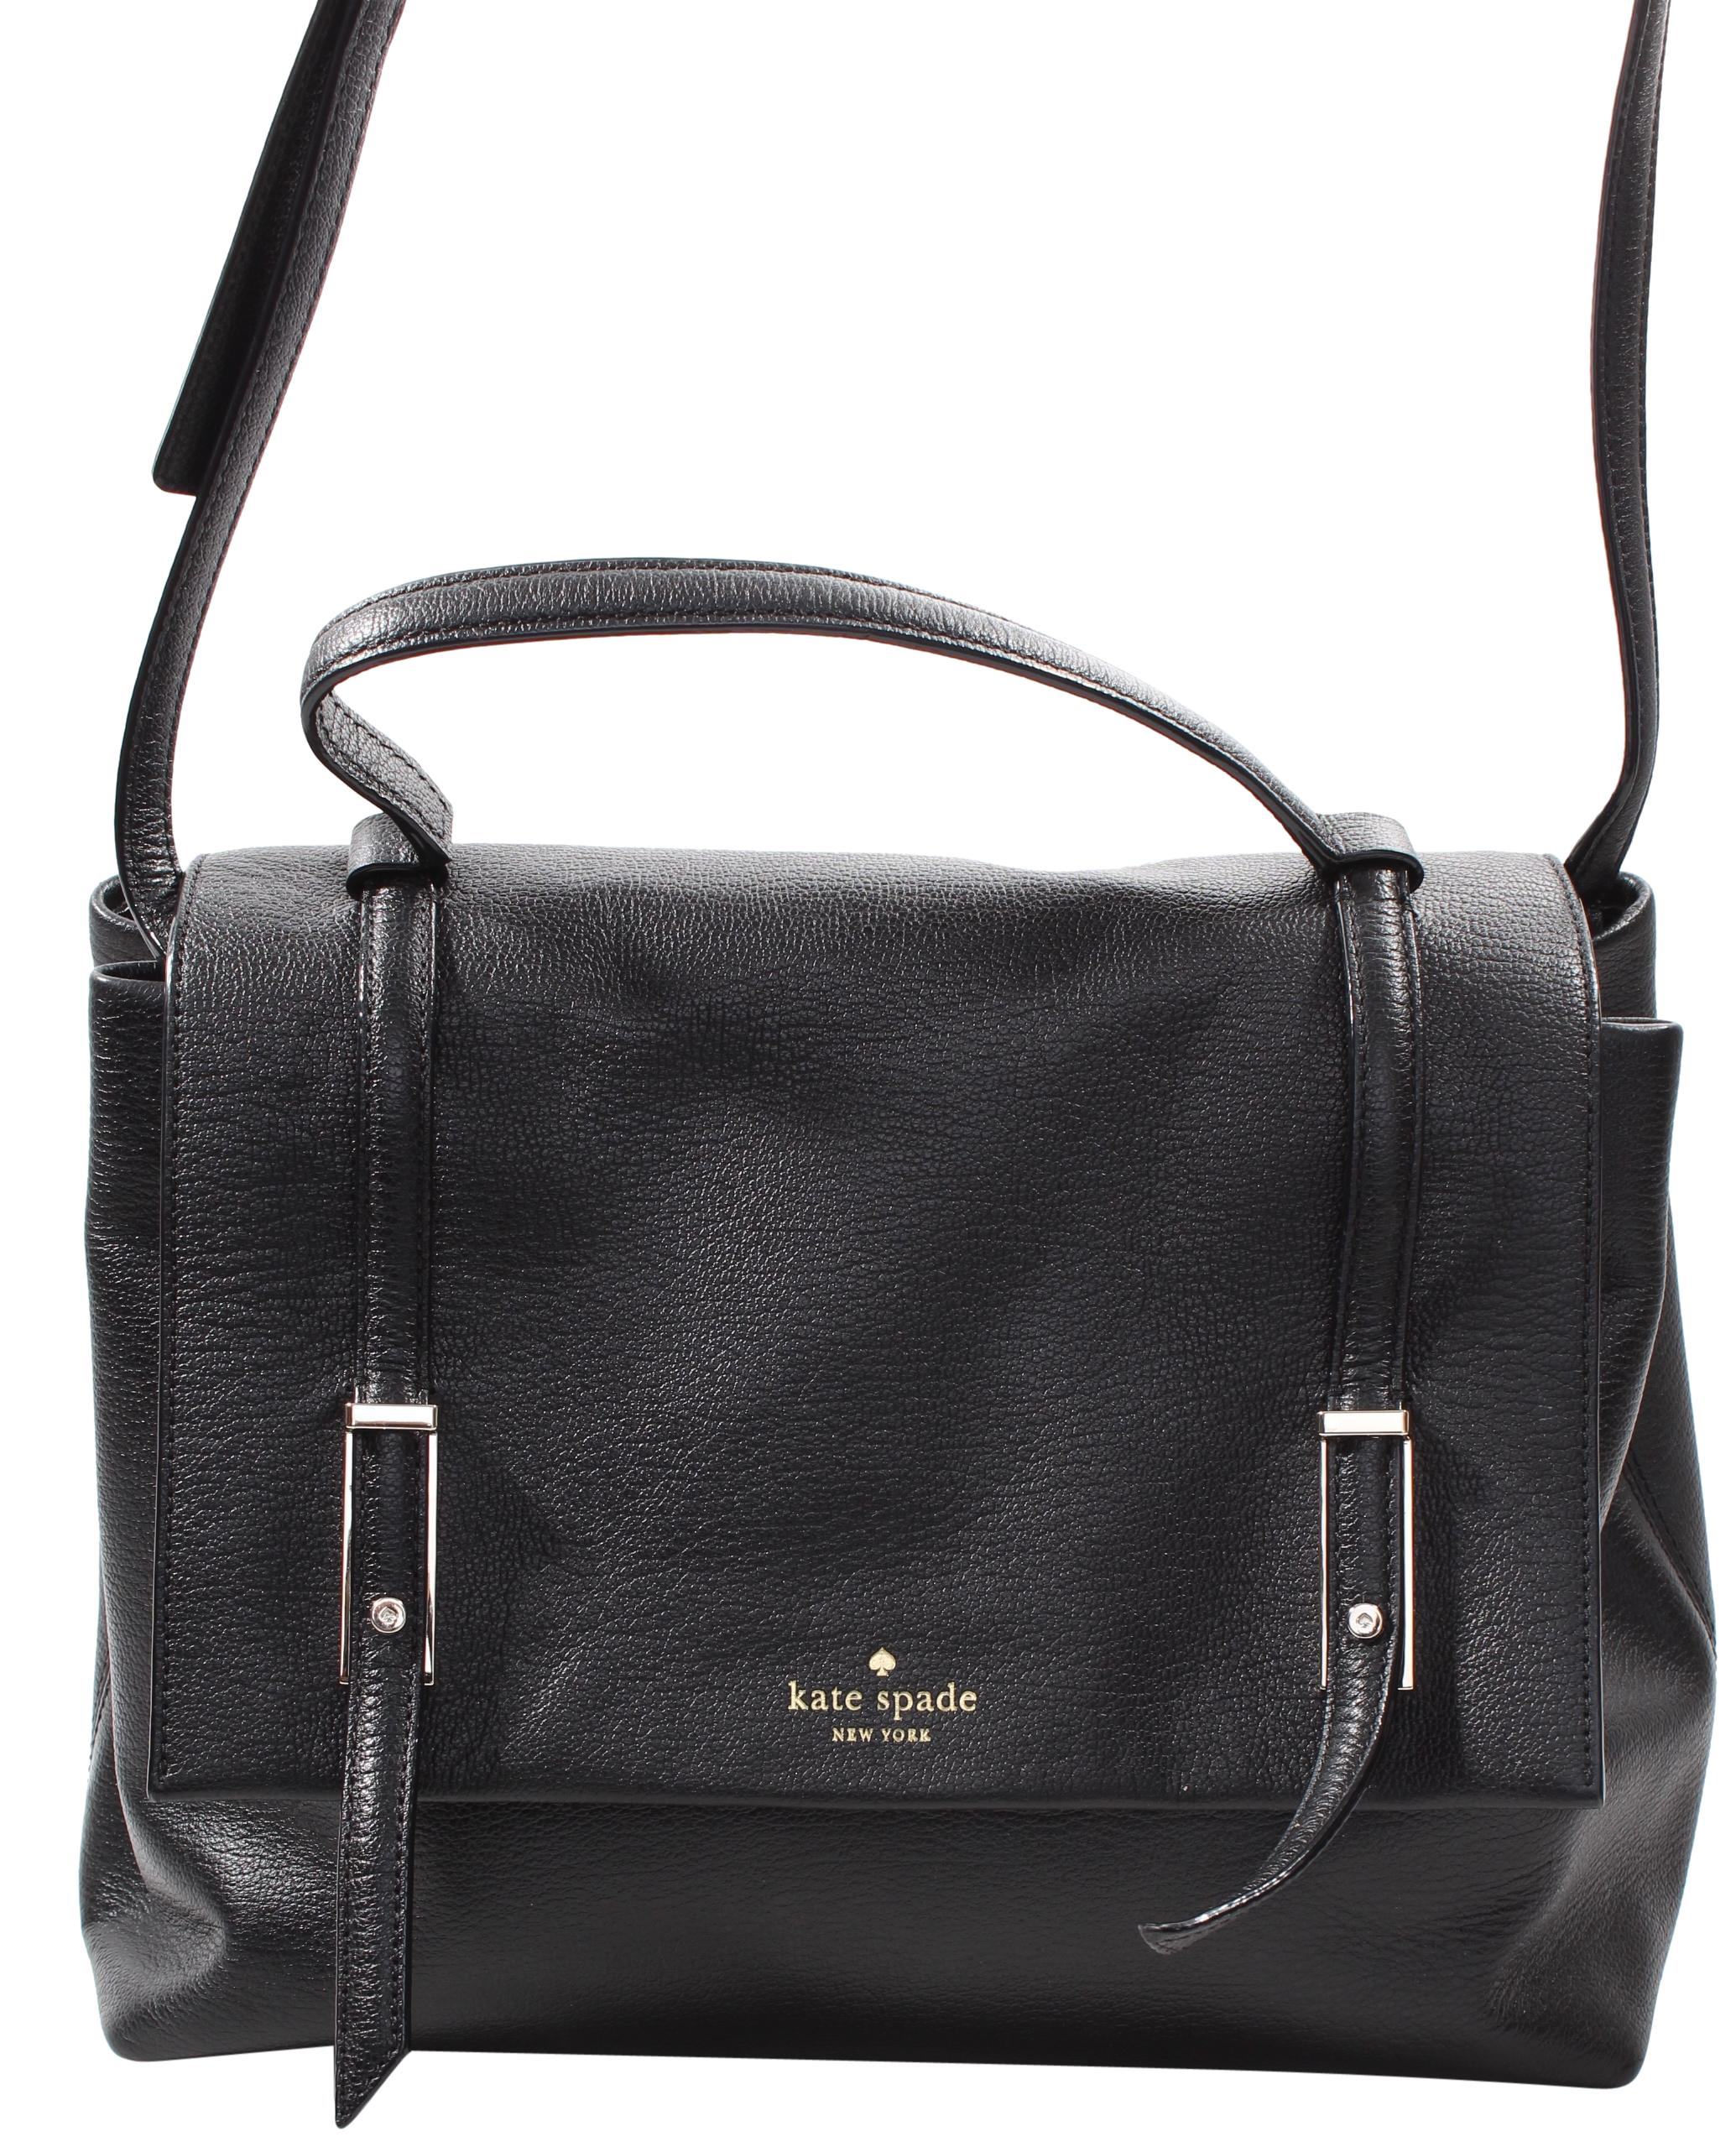 matches. ($ - $) Find great deals on the latest styles of Black kate spade satchel. Compare prices & save money on Handbags & Totes.